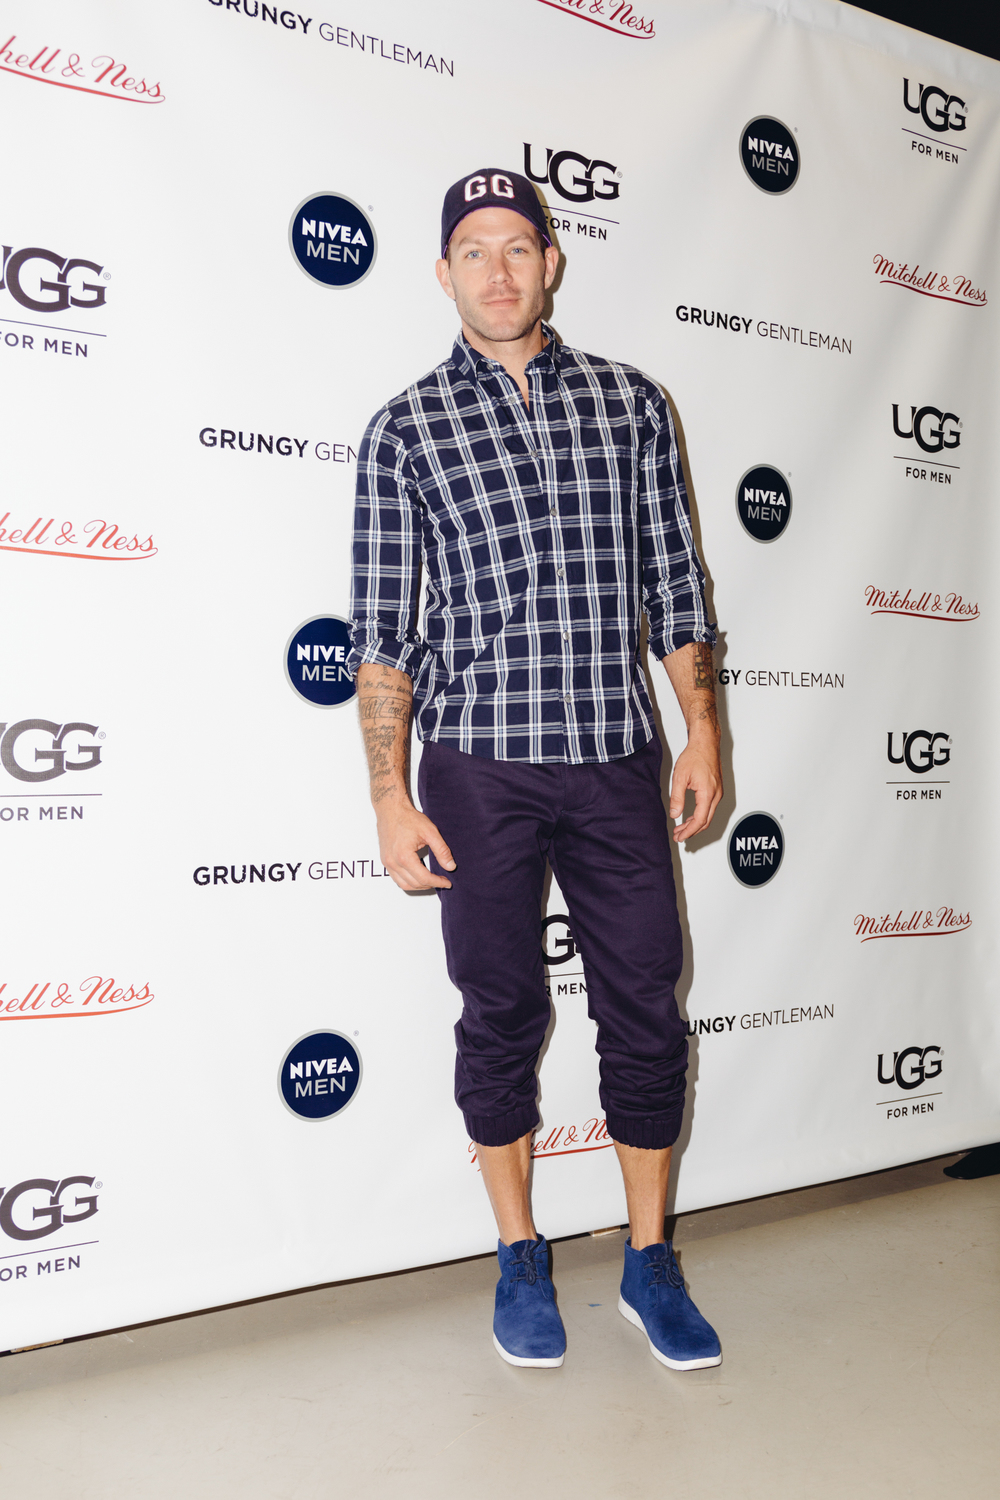 Johnny Wujek UGG Men Grungy Gentleman